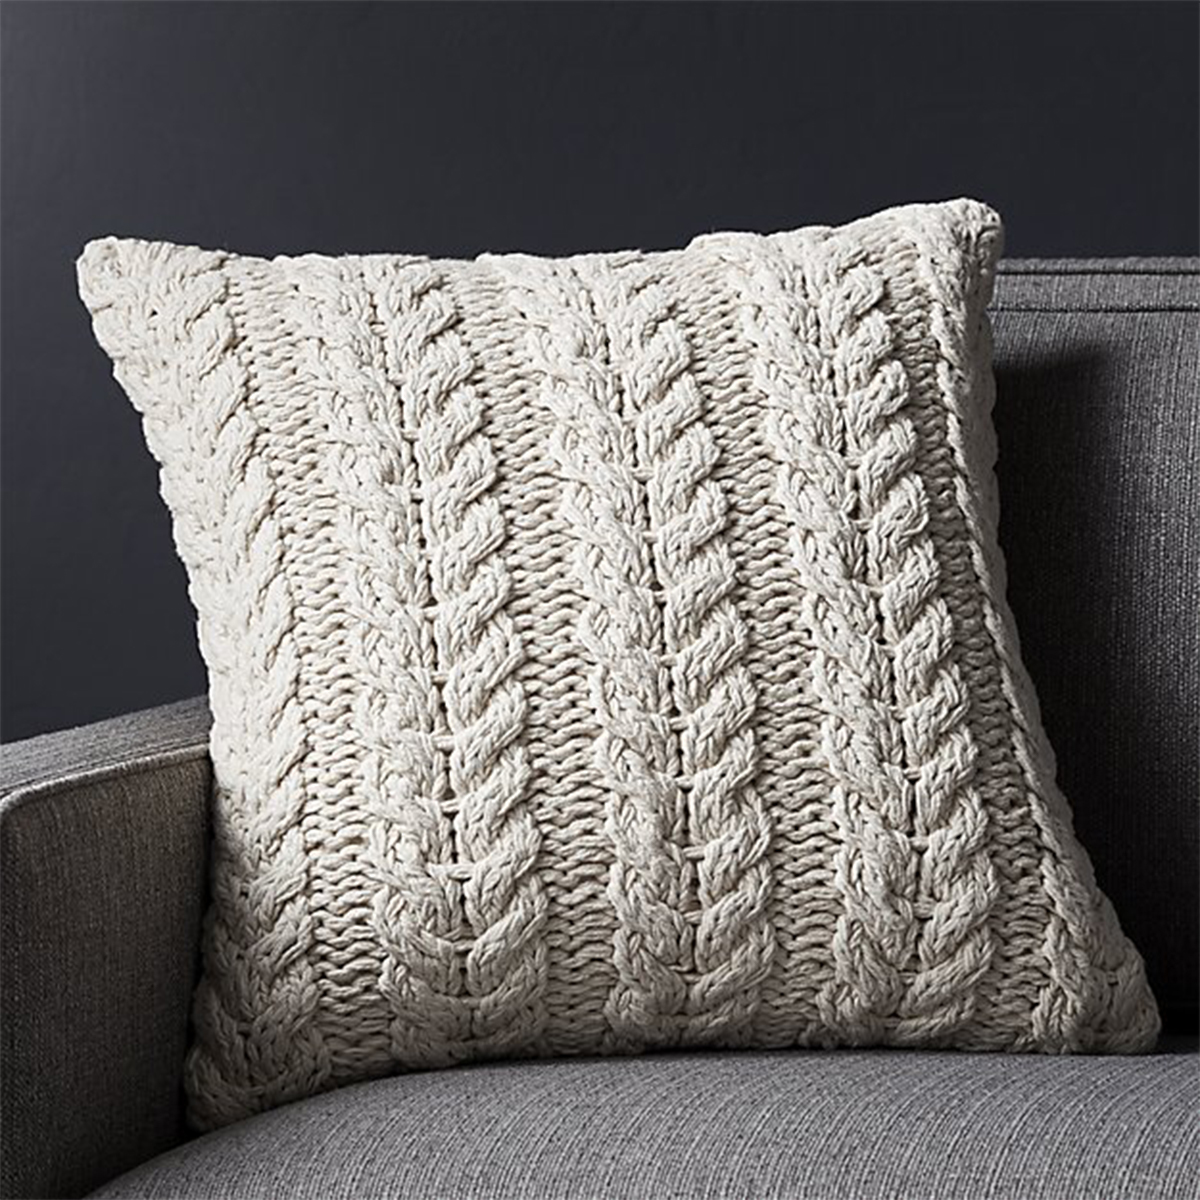 Knitted Neutral photo